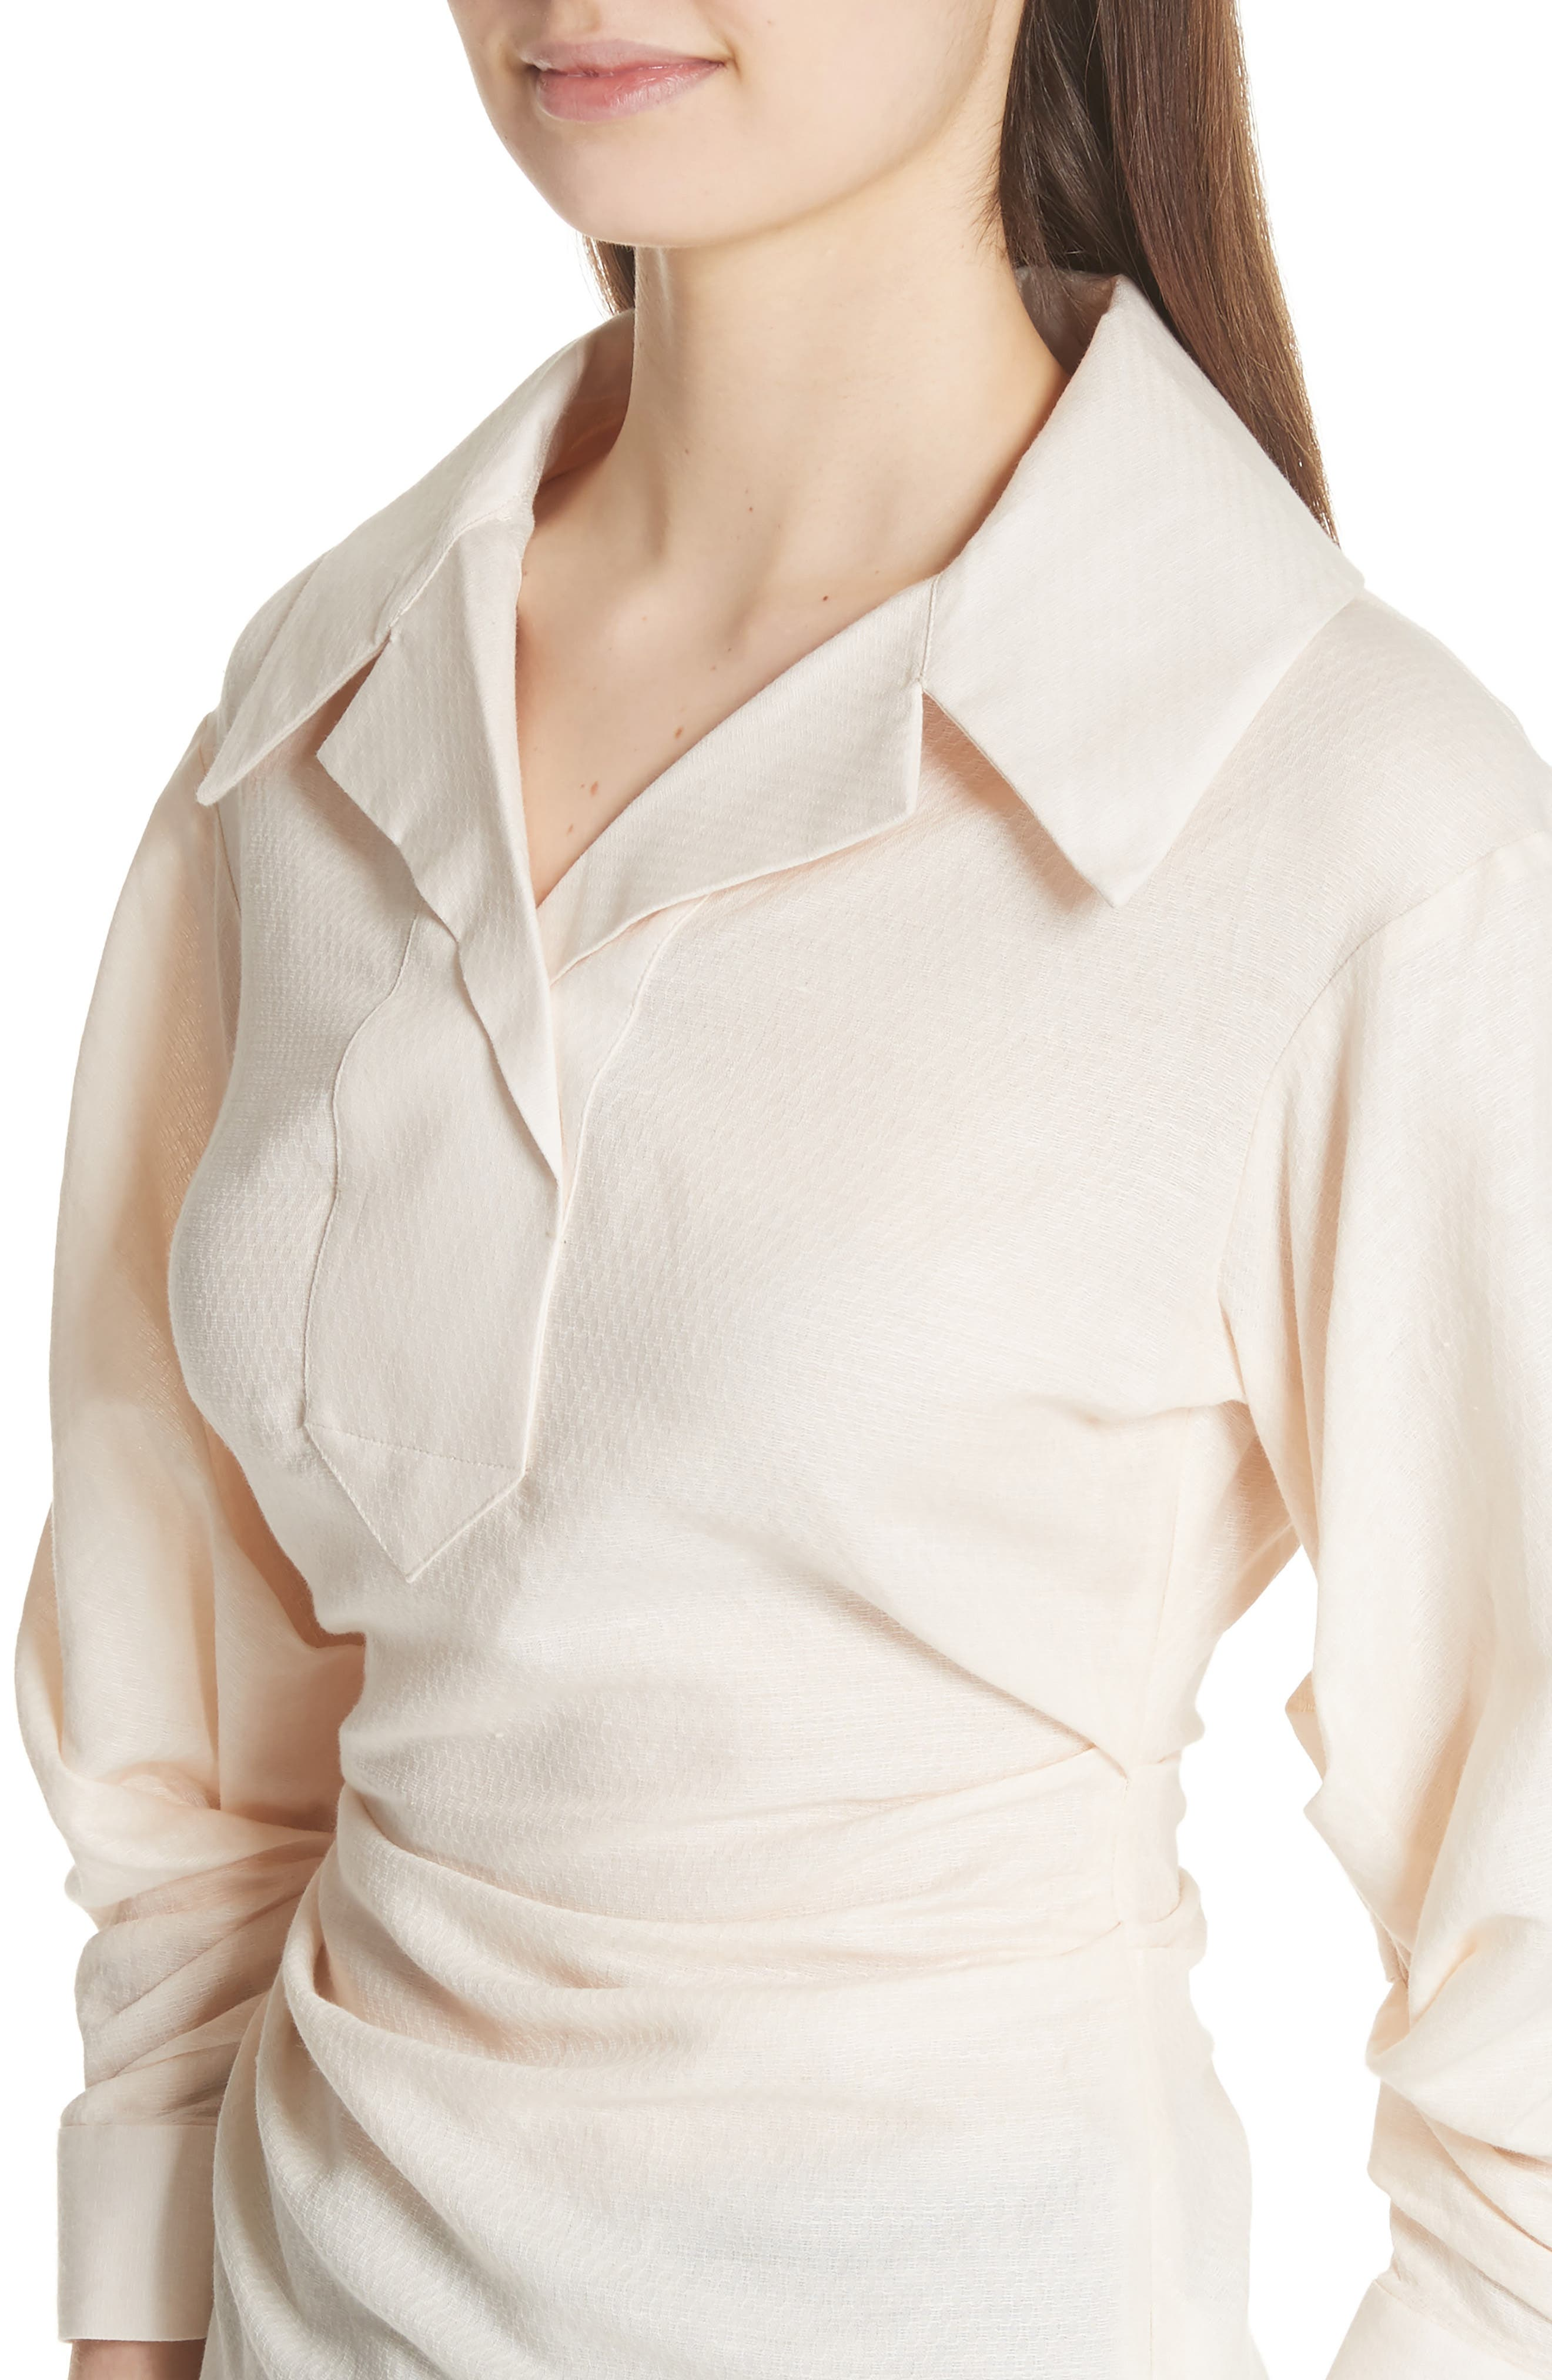 La Chemise Maceio Shirt,                             Alternate thumbnail 4, color,                             Beige